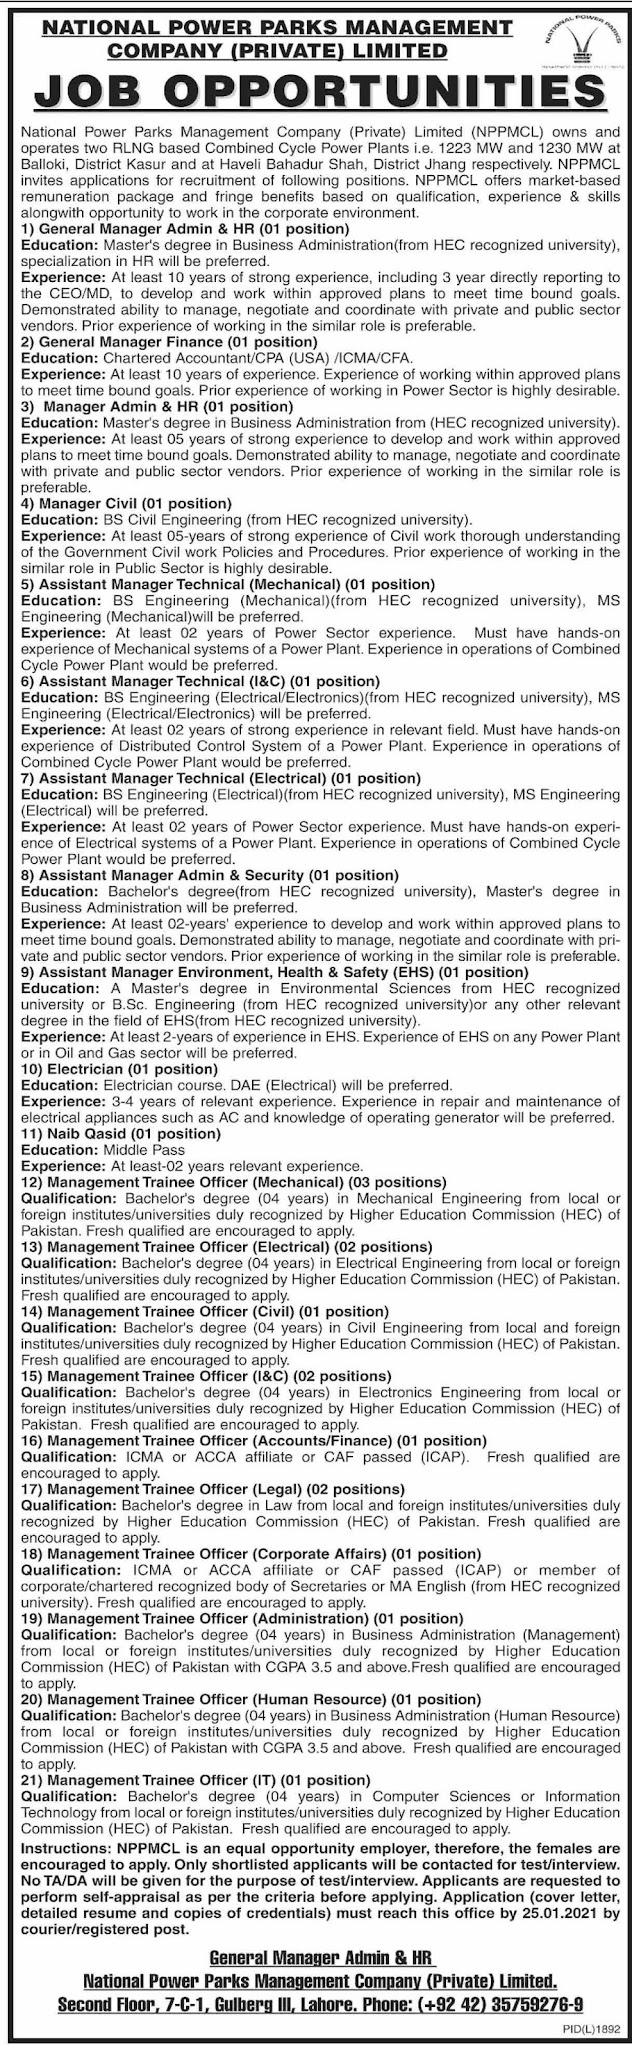 Jobs at National Power Parks Management Company Private Limited